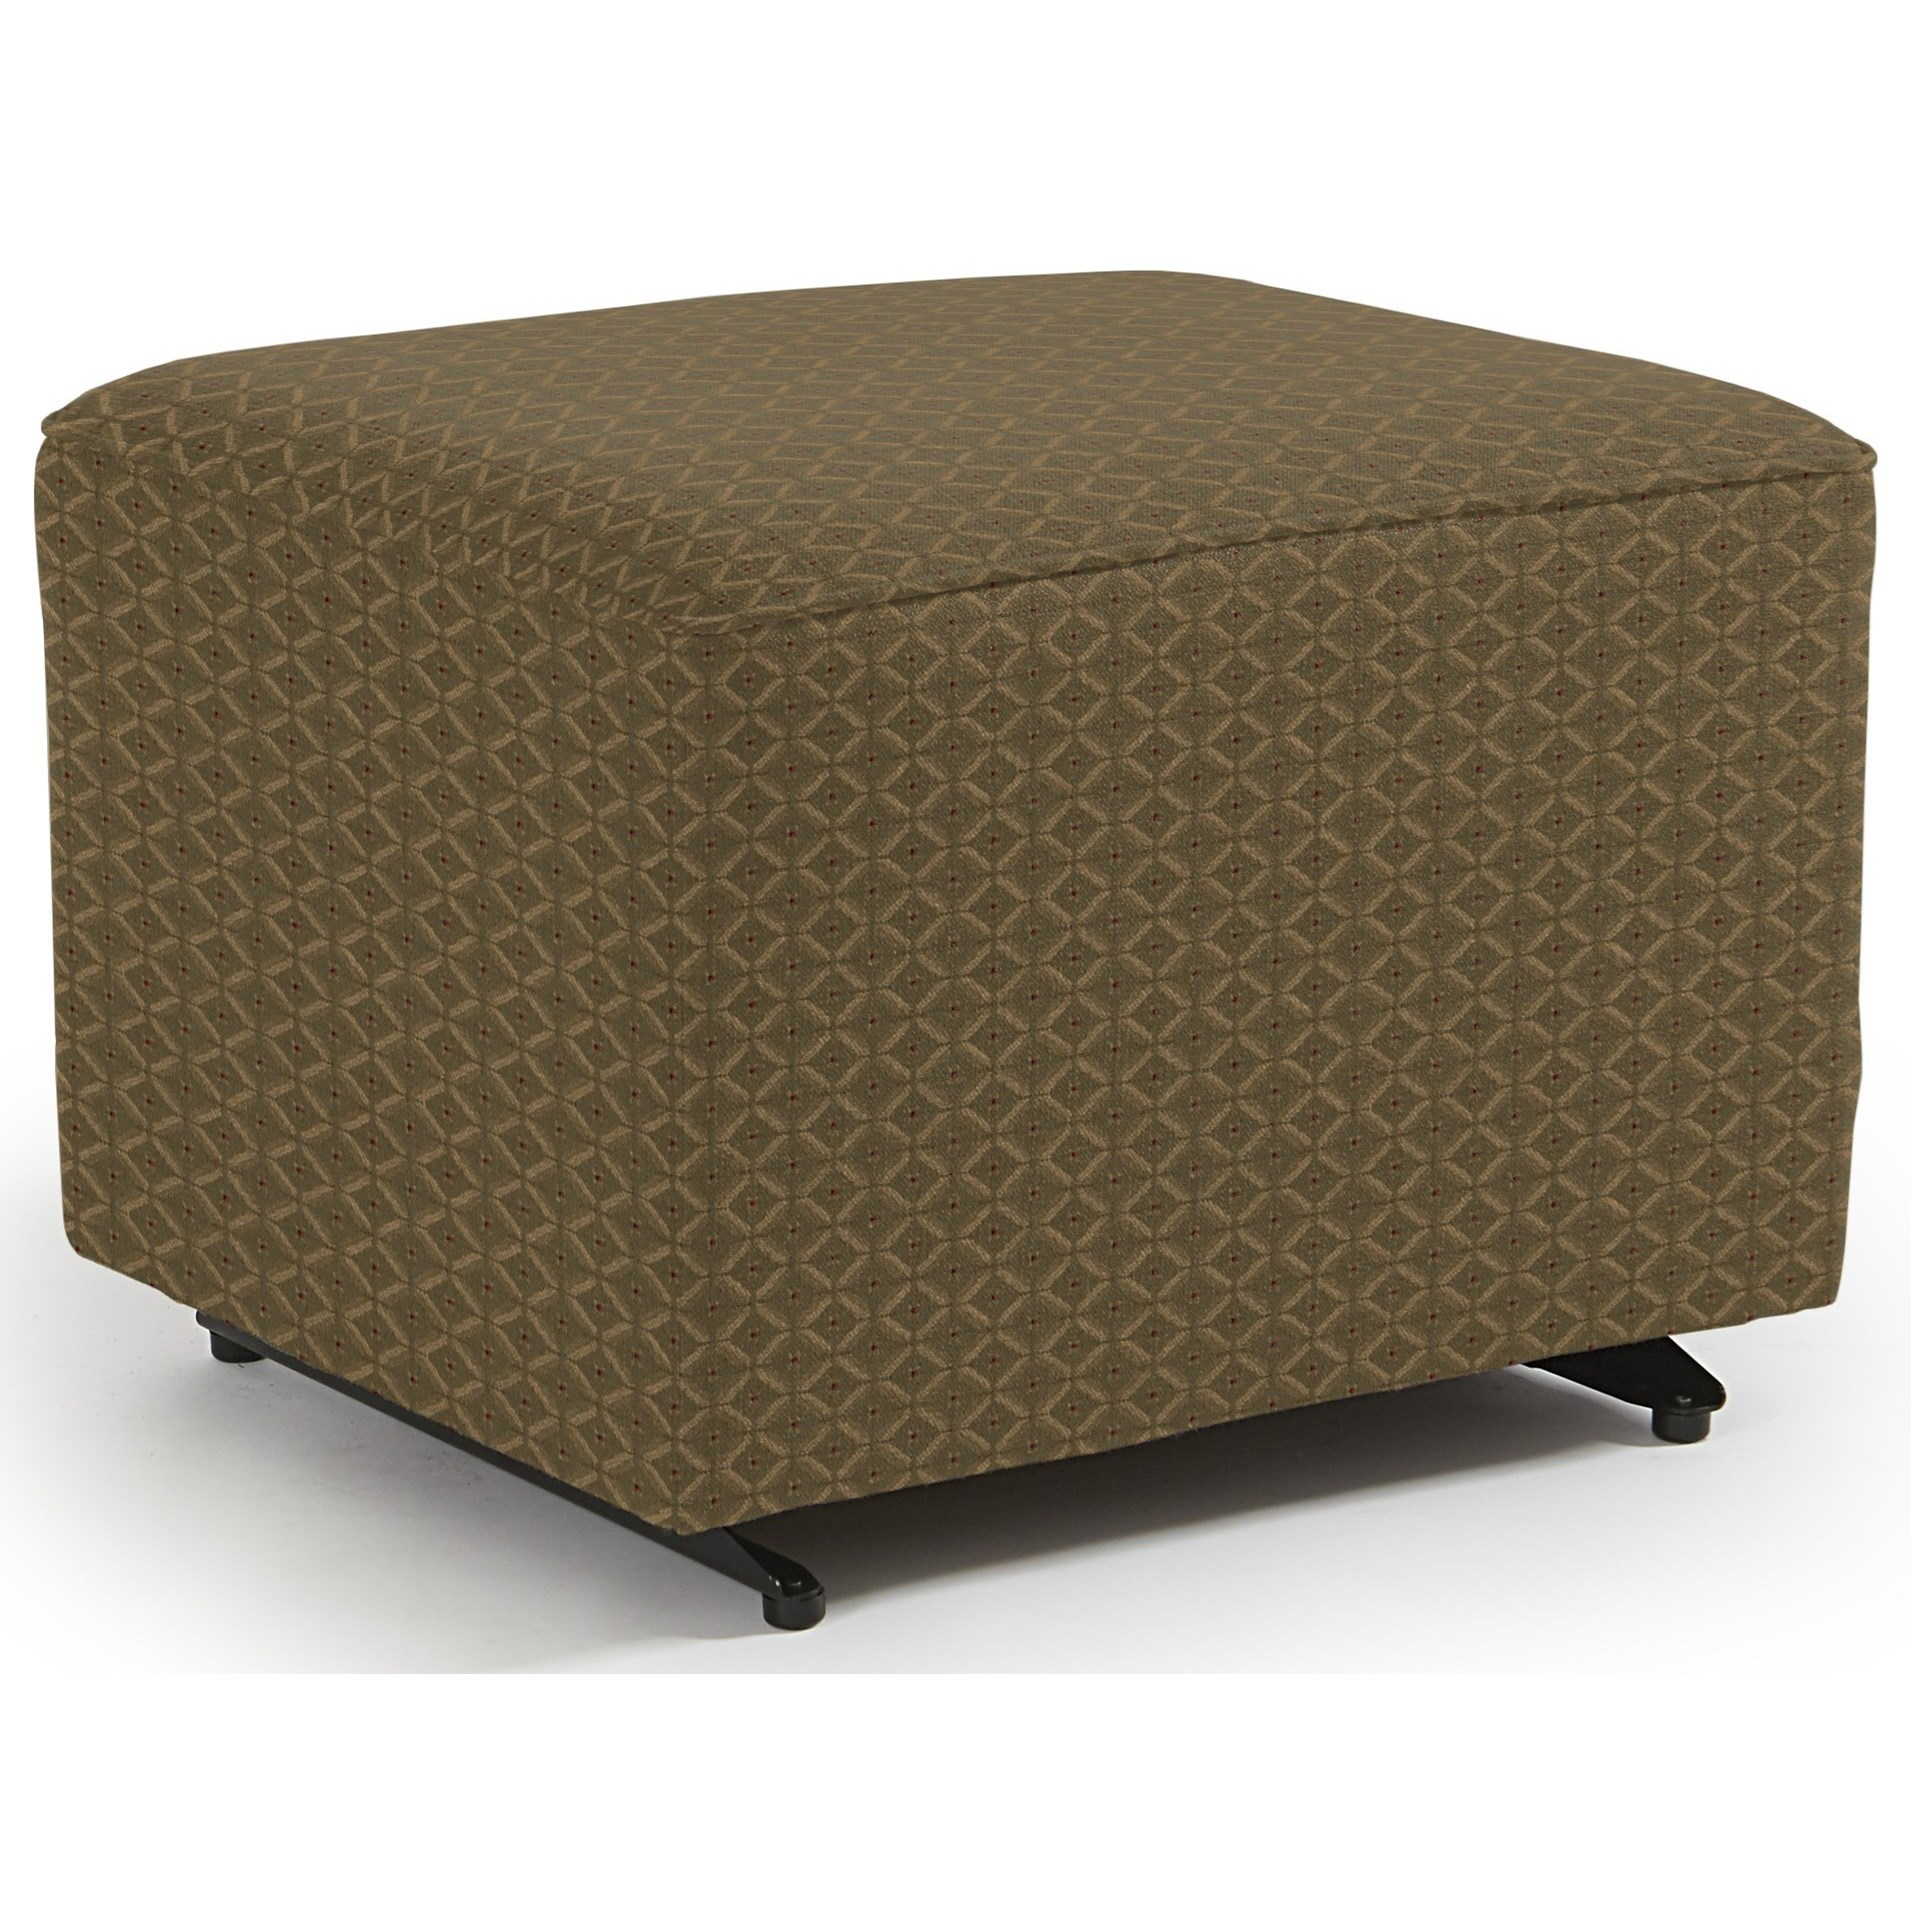 Kacey Ottoman W/ Glider Base by Best Home Furnishings at Stoney Creek Furniture